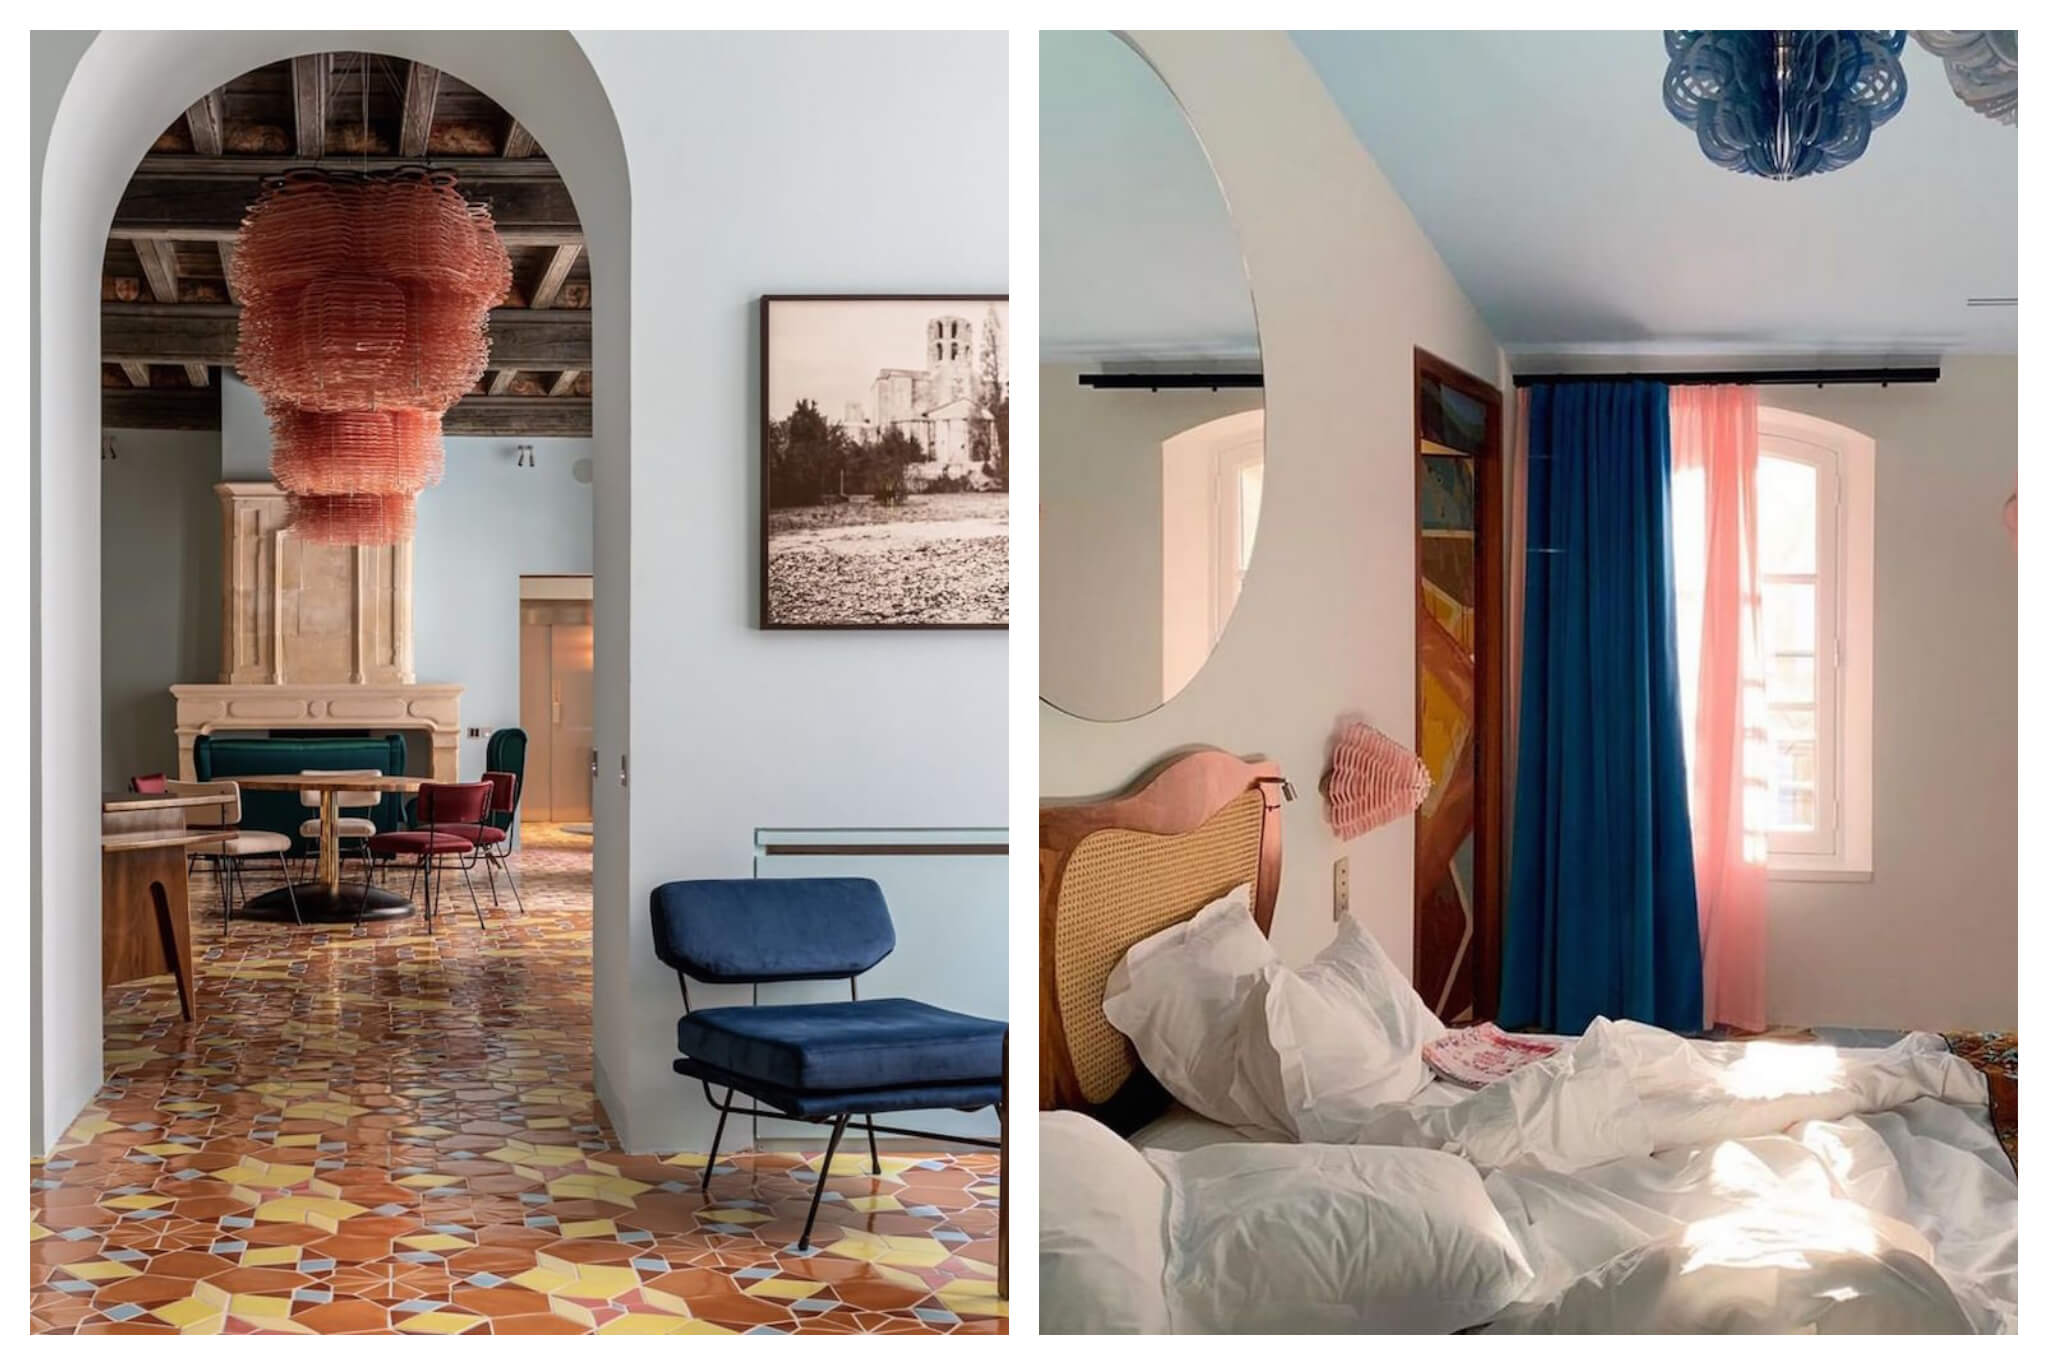 Interior shots of the beautifully decorated and designed L'Arlatan in Arles, complete with a light blue, pink, white and orange color scheme.